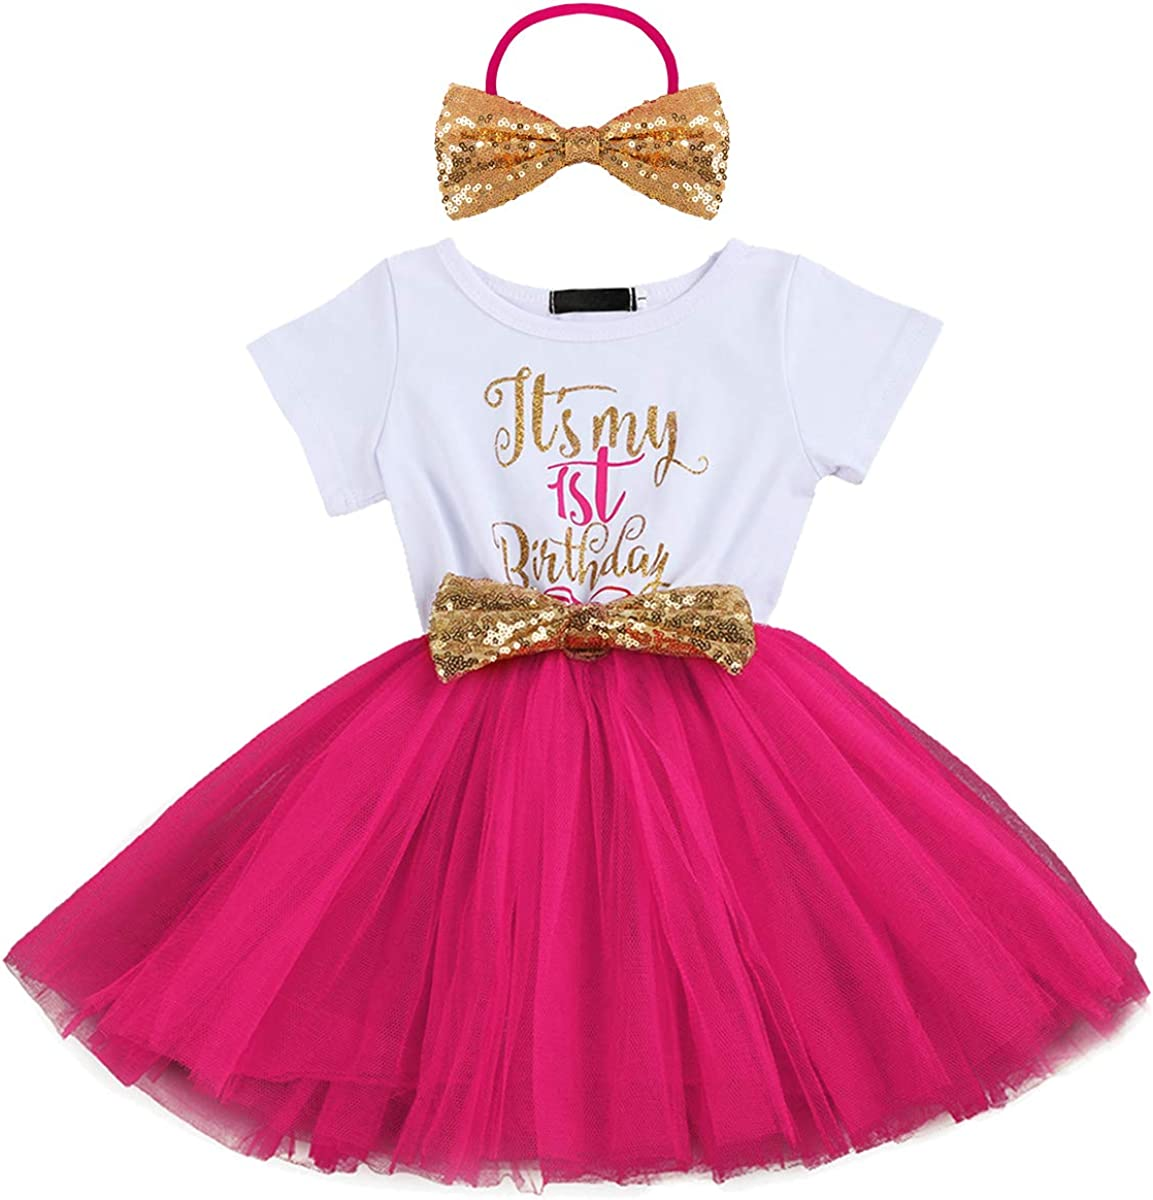 Fast shipping!Princess Tutu Birthday Tutu white and Gold Handmade with Bow Pink